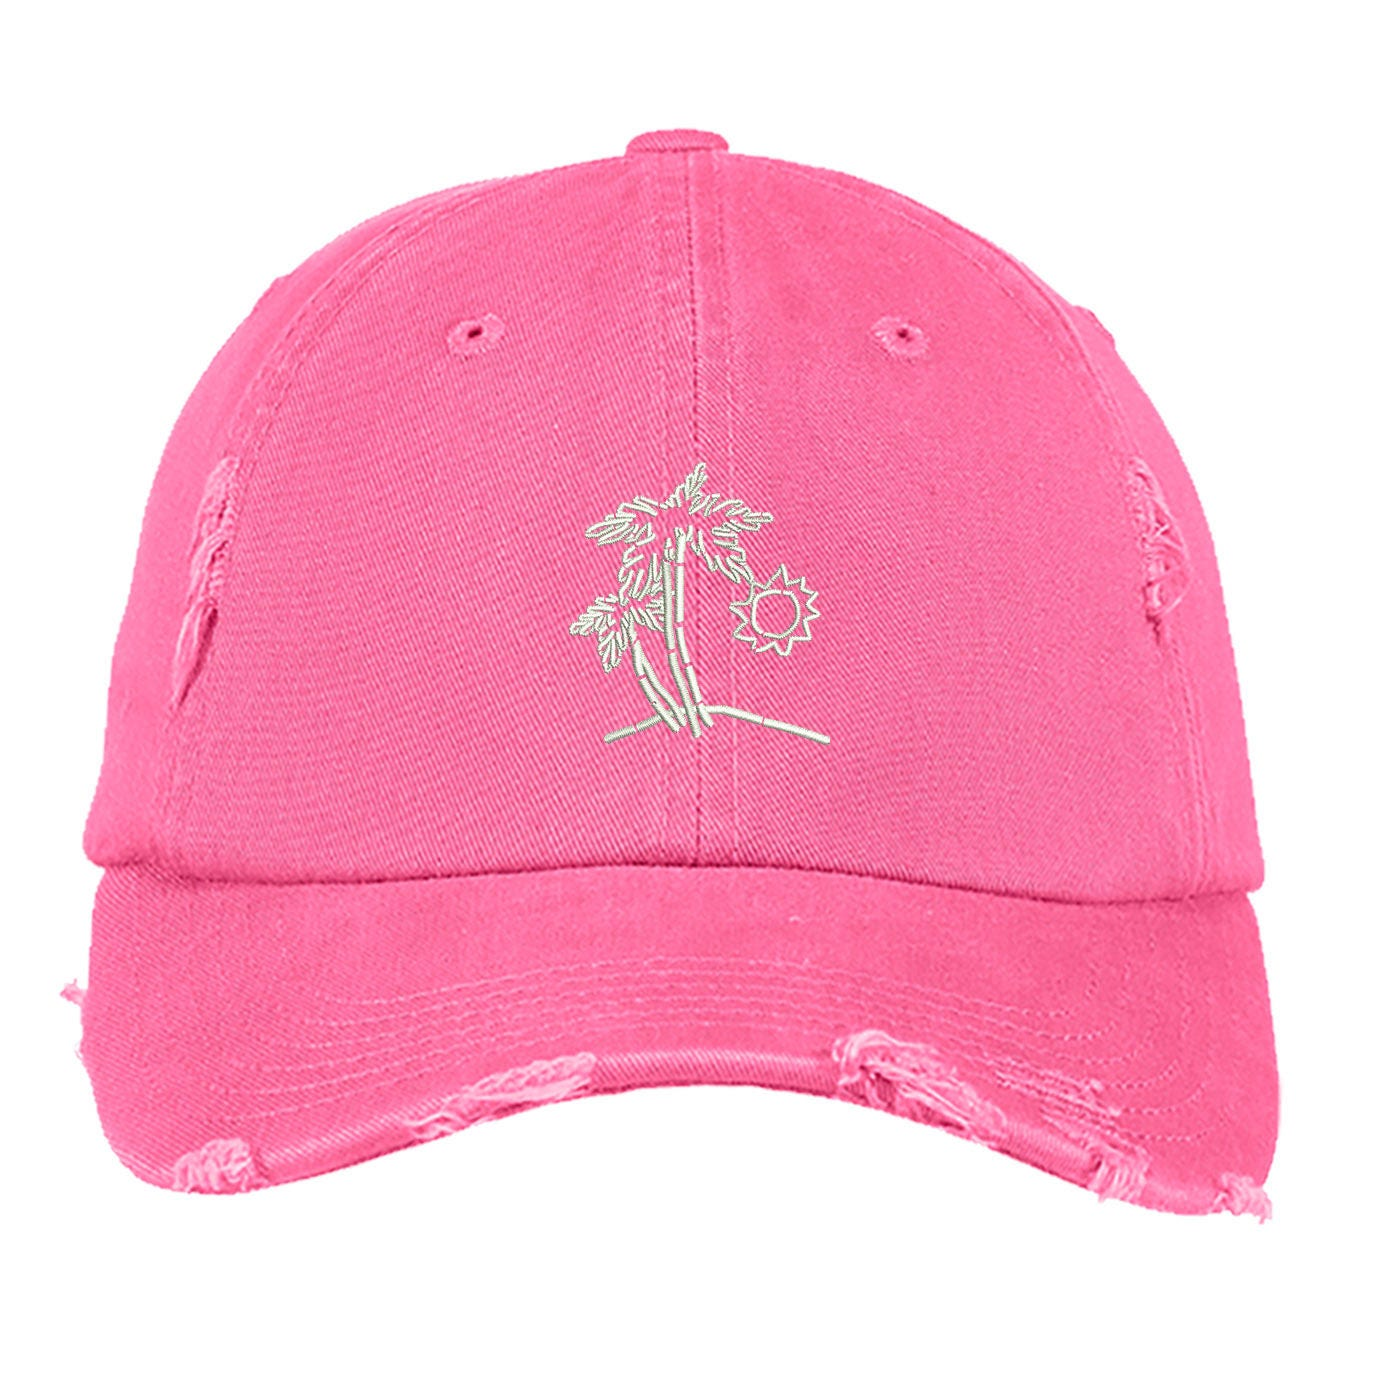 a39126e57876e BEACH SCENE Distressed Dad Hat